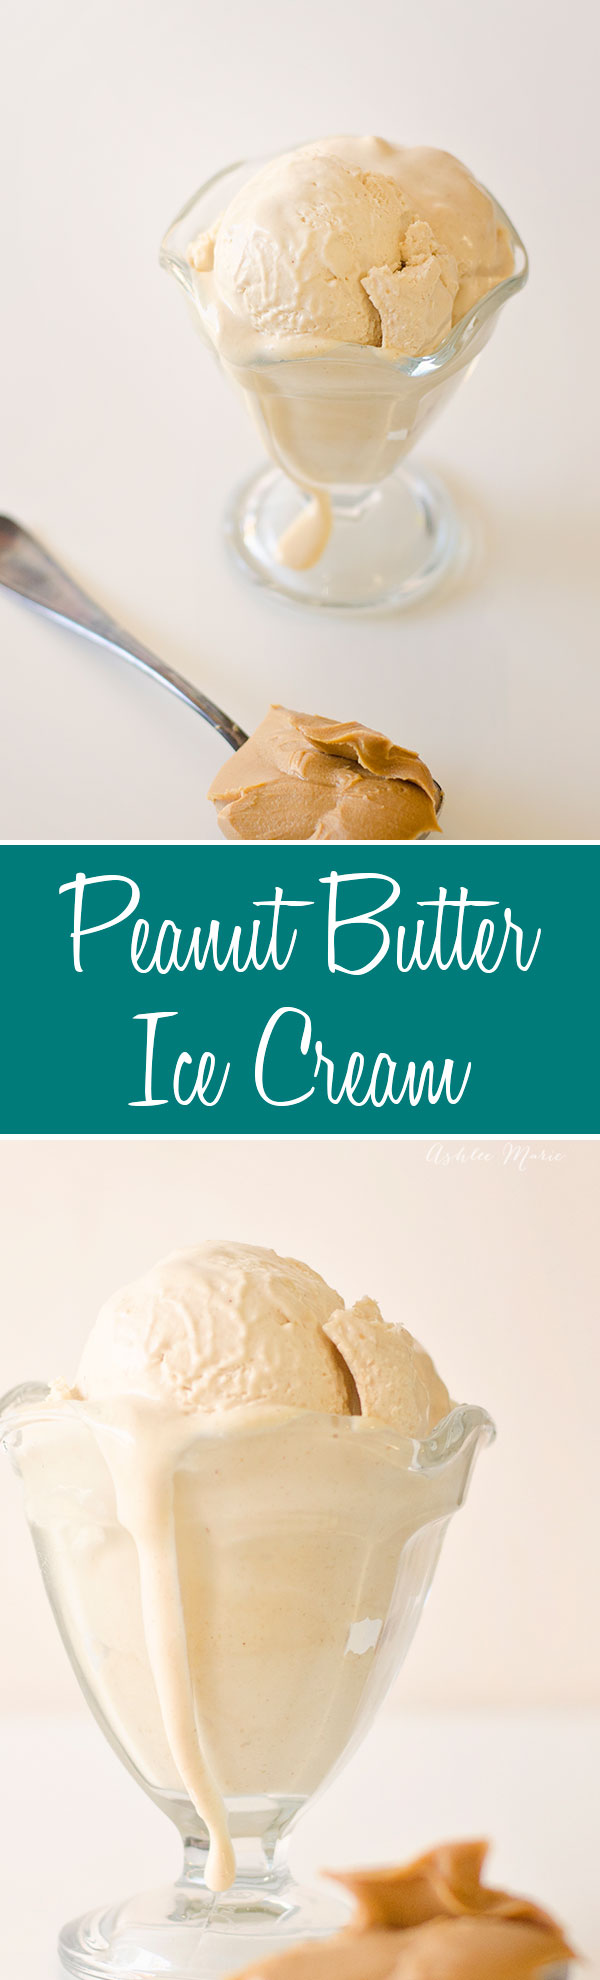 this creamy peanut butter ice cream is always a huge hit.  I get requests for it all the time